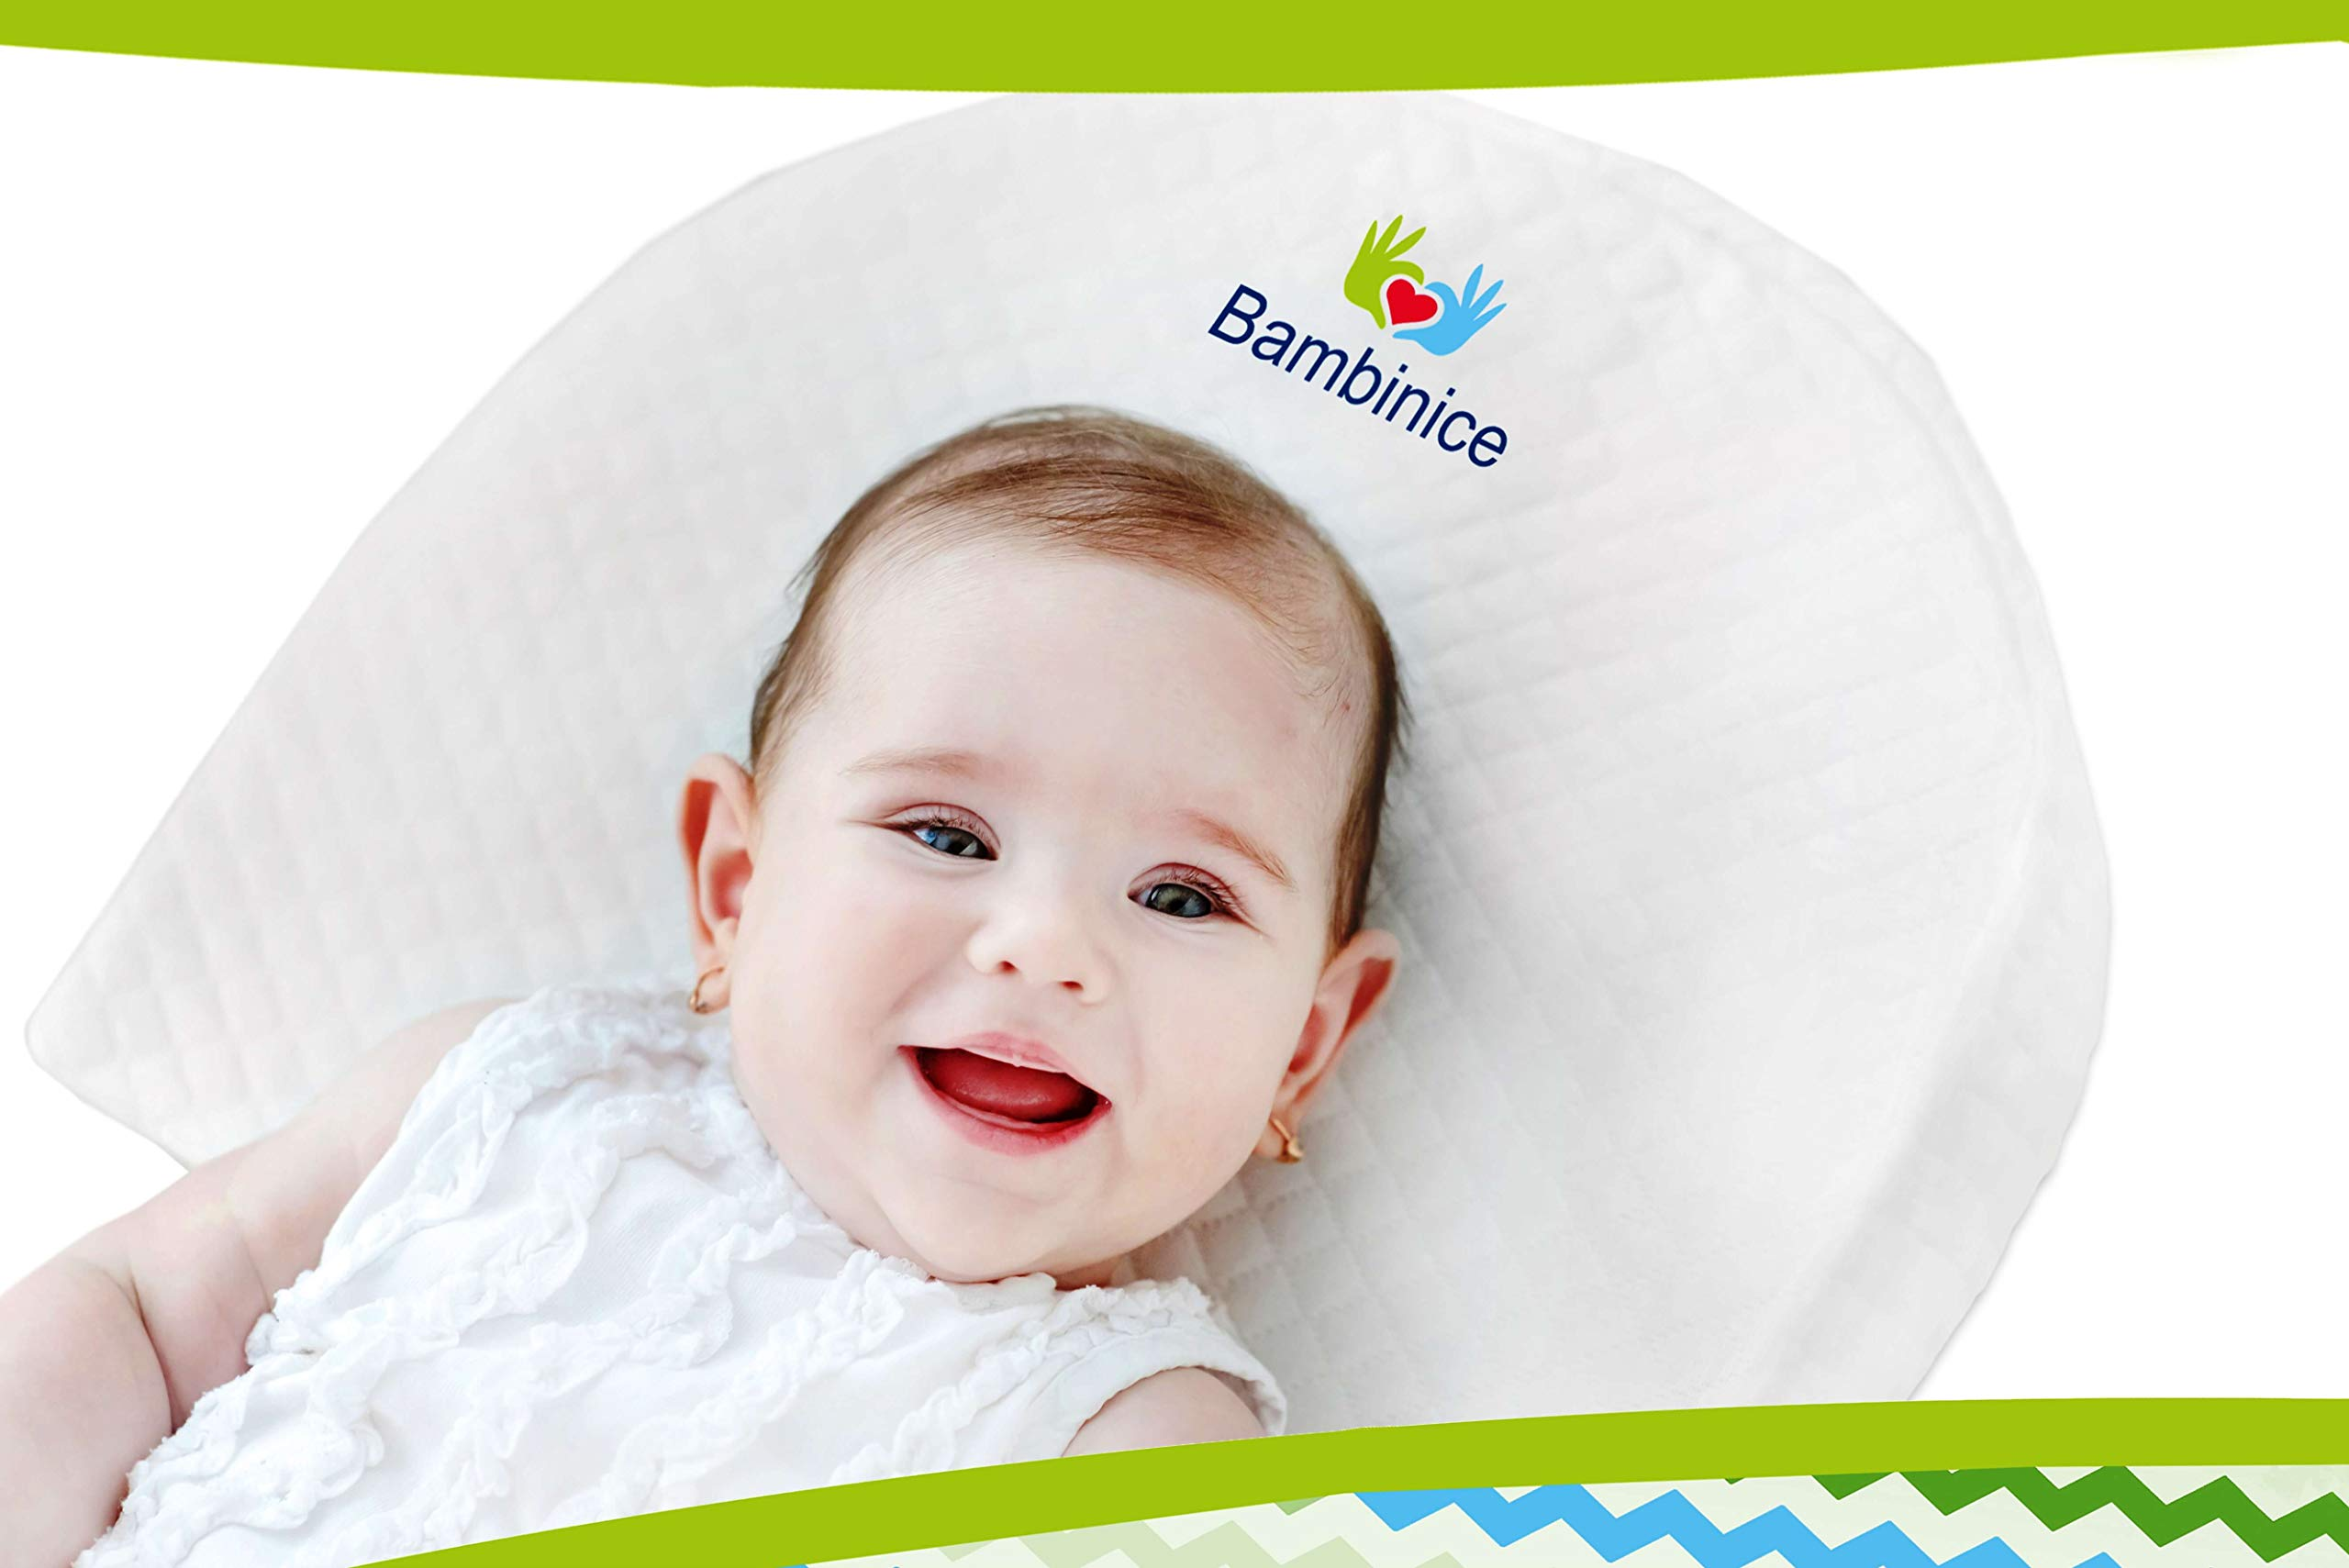 Bambinice Universal Bassinet Wedge - Infant Crib Pillow - Waterproof Changing Pad Liner - Portable Incline Cushion - Newborn Reflux and Nasal Congestion Reducer - Ebook - Perfect Baby Shower Gift